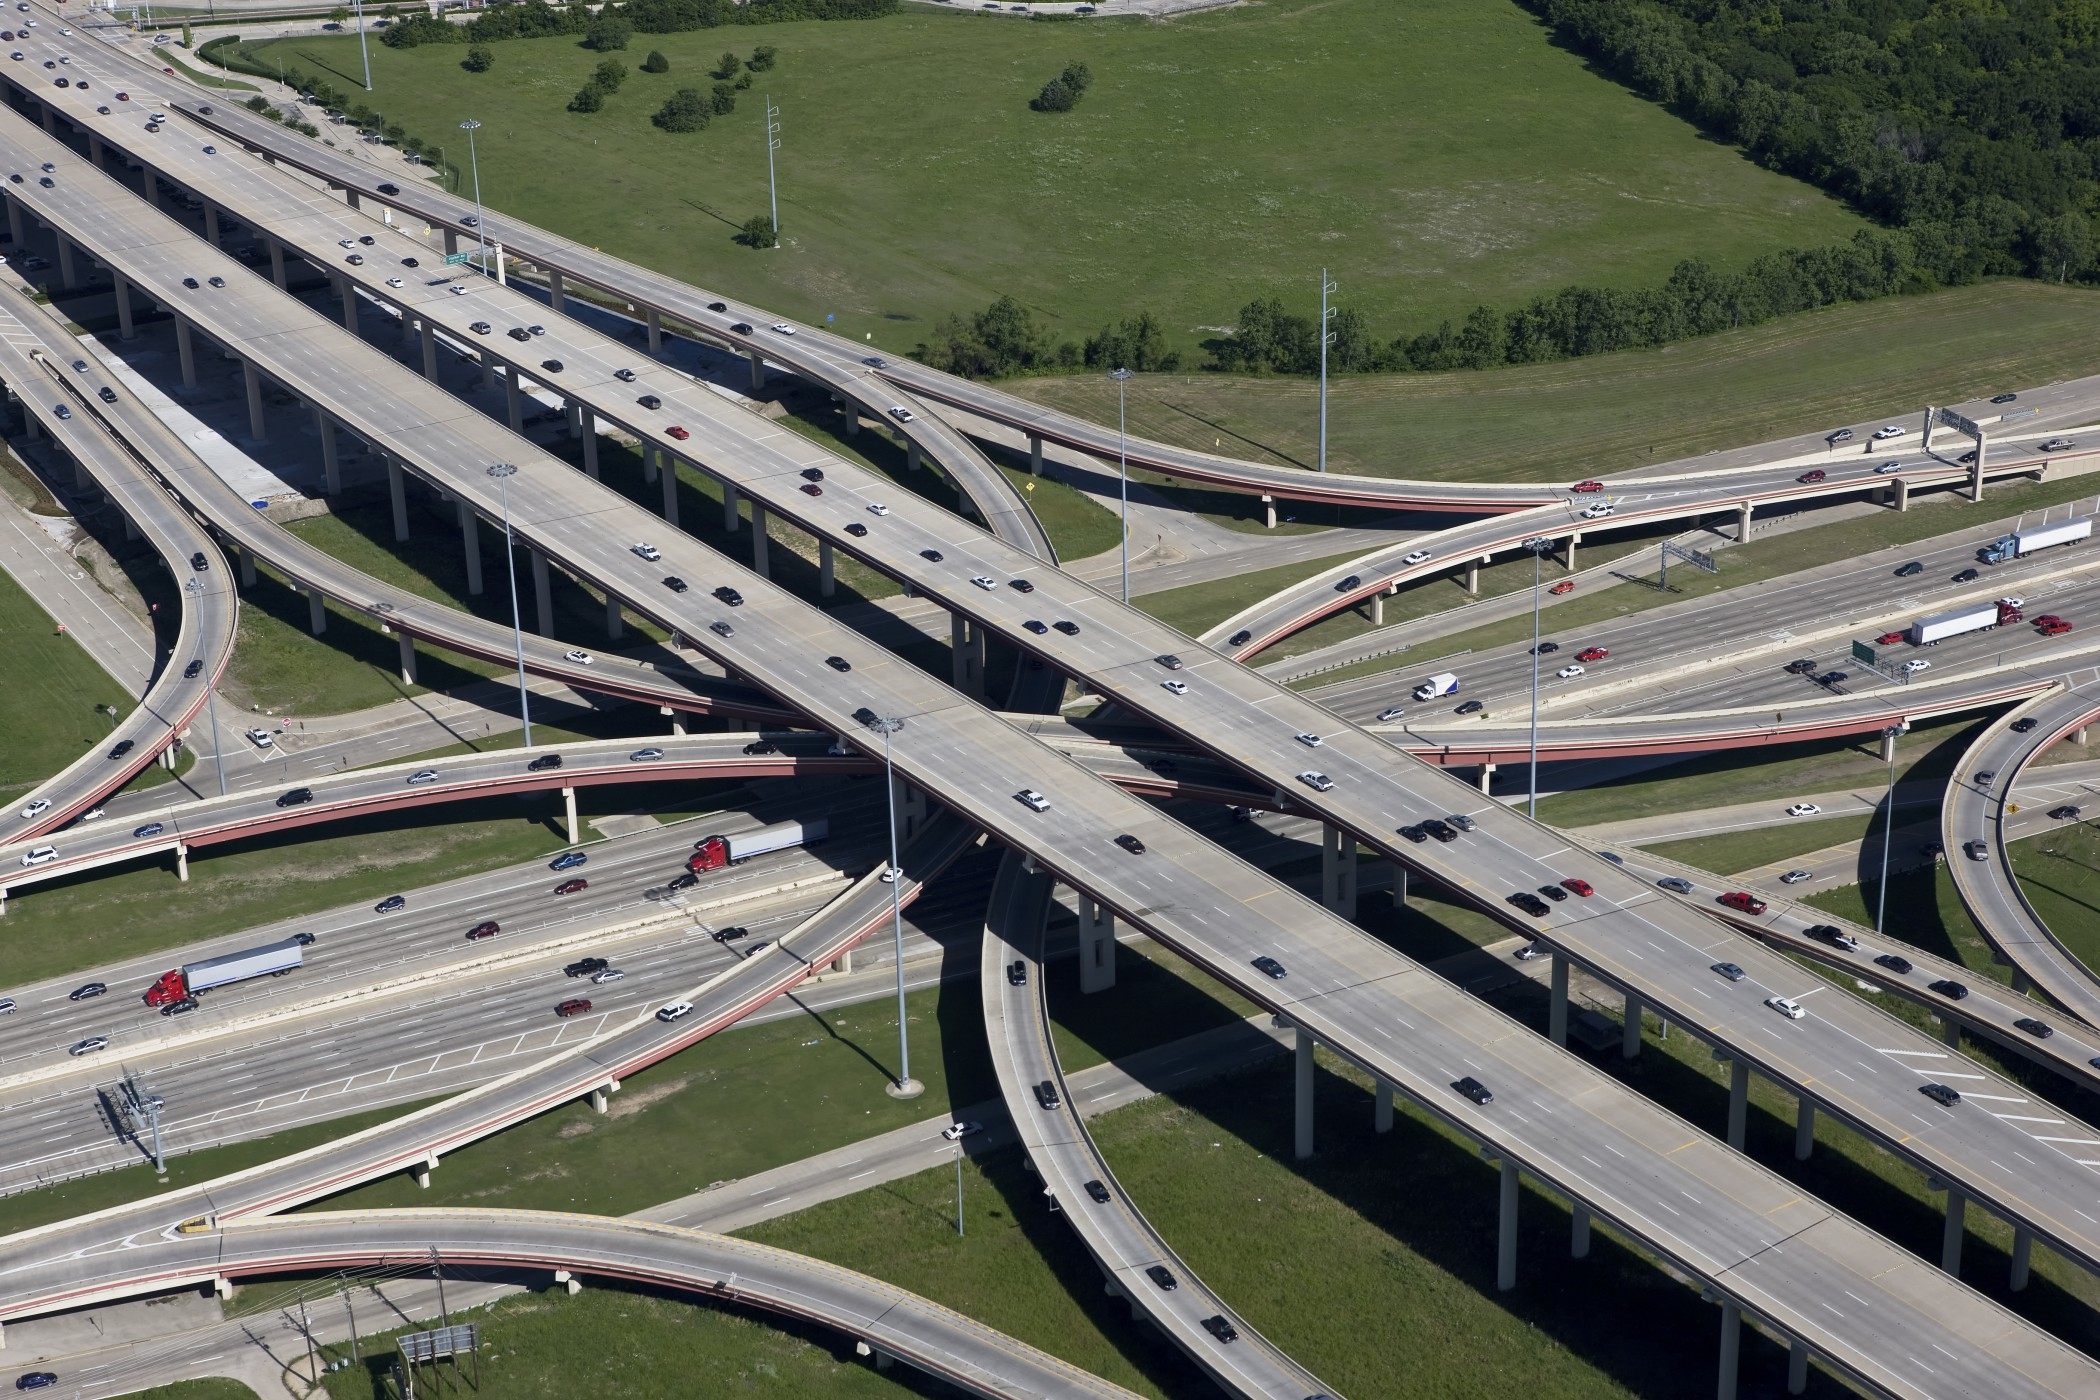 Looks Like Short-term Fixes for Highway Funding Again